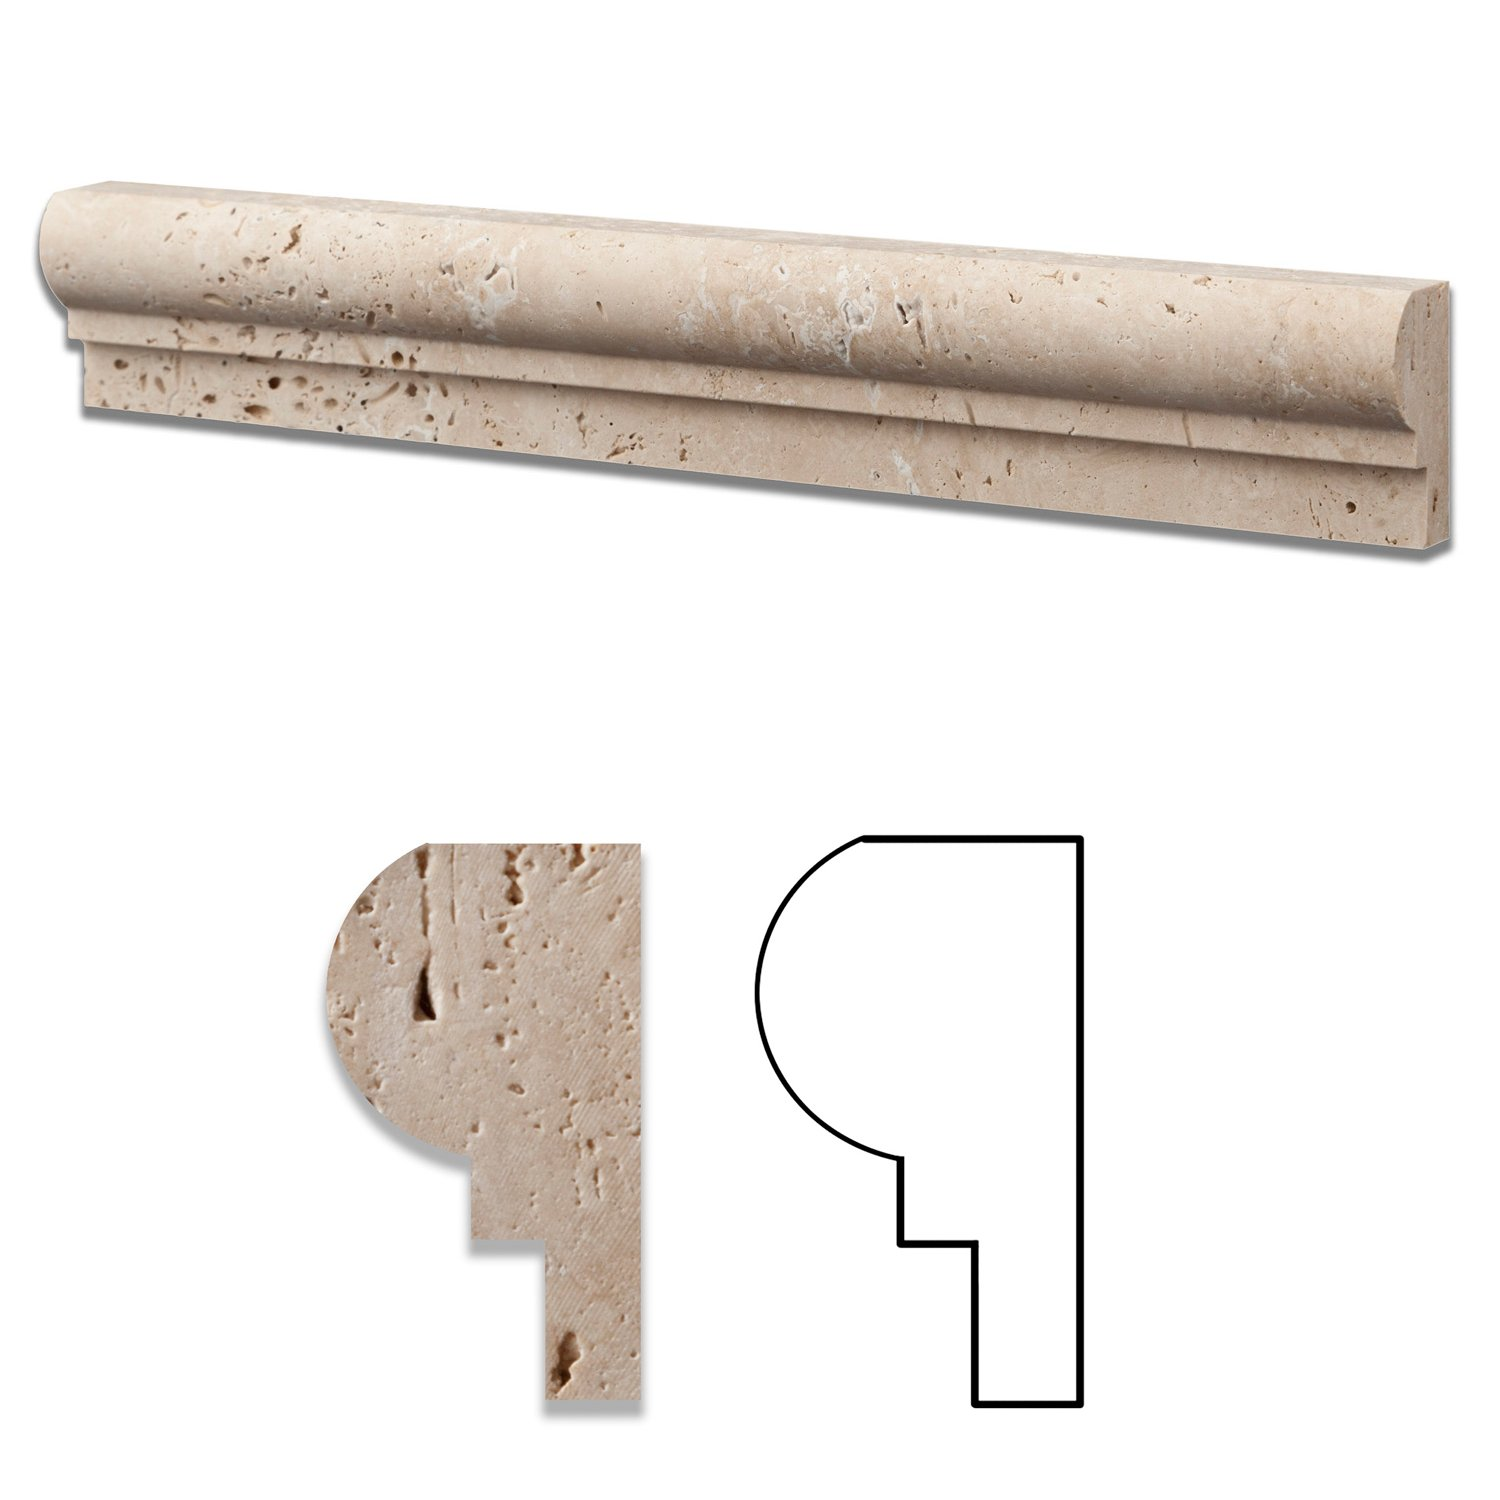 Attractive Travertine Chair Rail 2 X 12 Part - 5: Ivory Travertine Honed 2 X 12 Chair Rail Ogee-1 Molding - Standard Quality  - BOX Of 15 PCS - Wood Moldings And Trims - Amazon.com